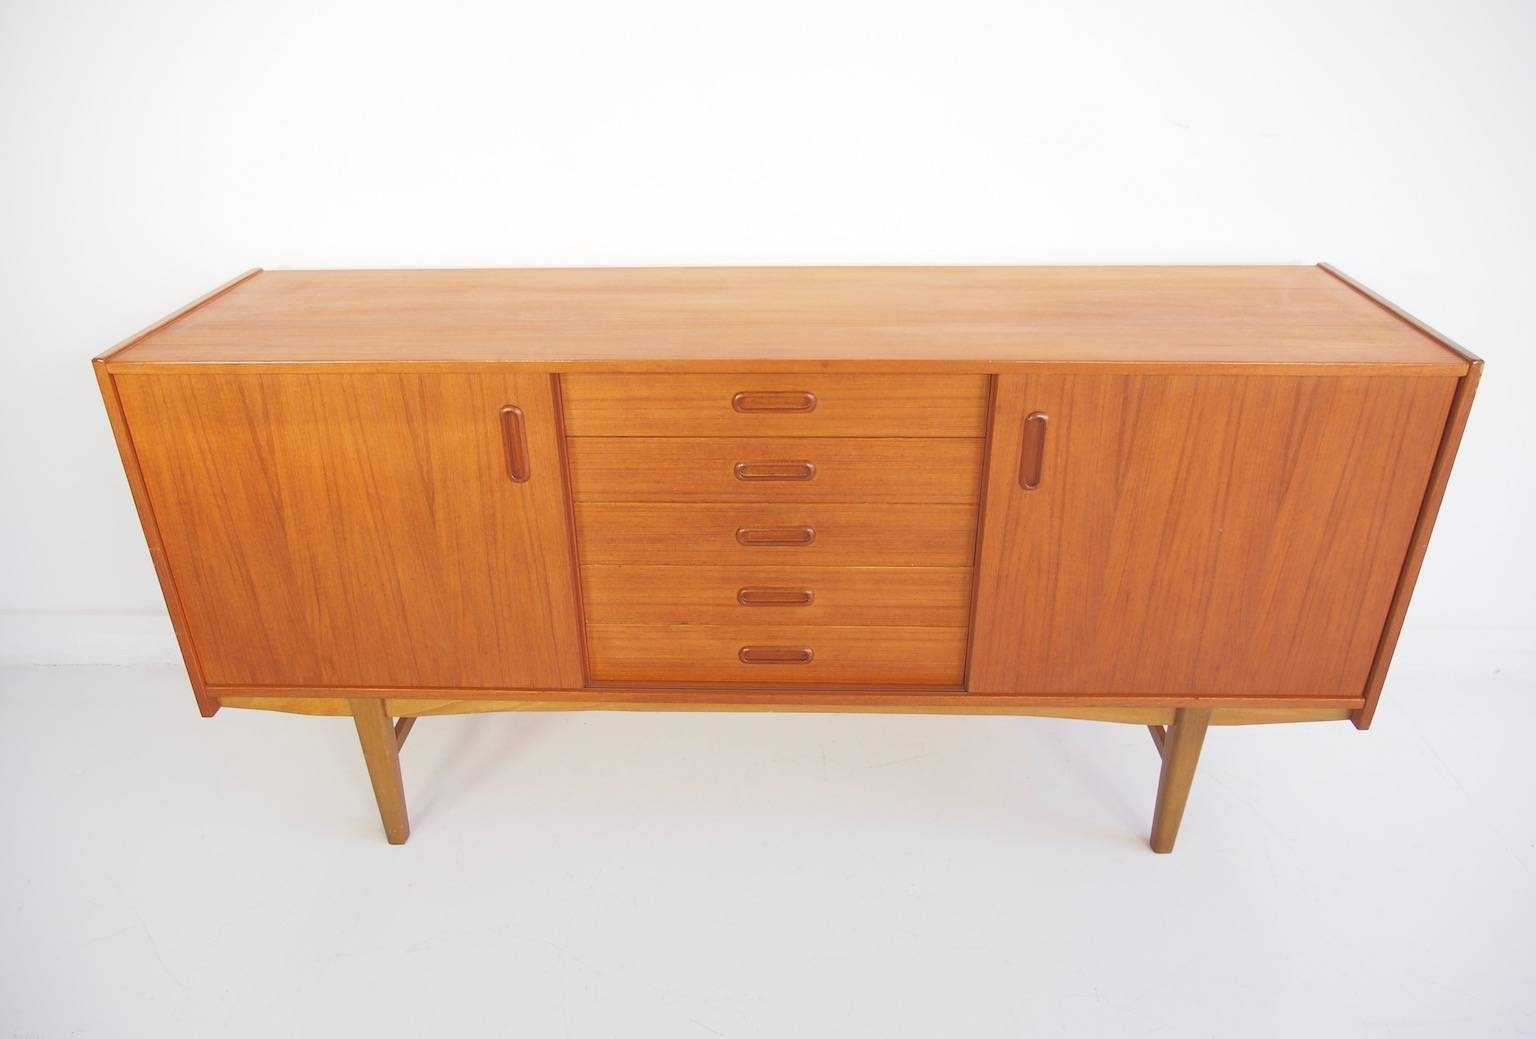 Scandinavian Modern Teak Sideboard With Shelves And Drawers, 1960S With Regard To Most Recently Released Scandinavian Sideboards (#8 of 15)